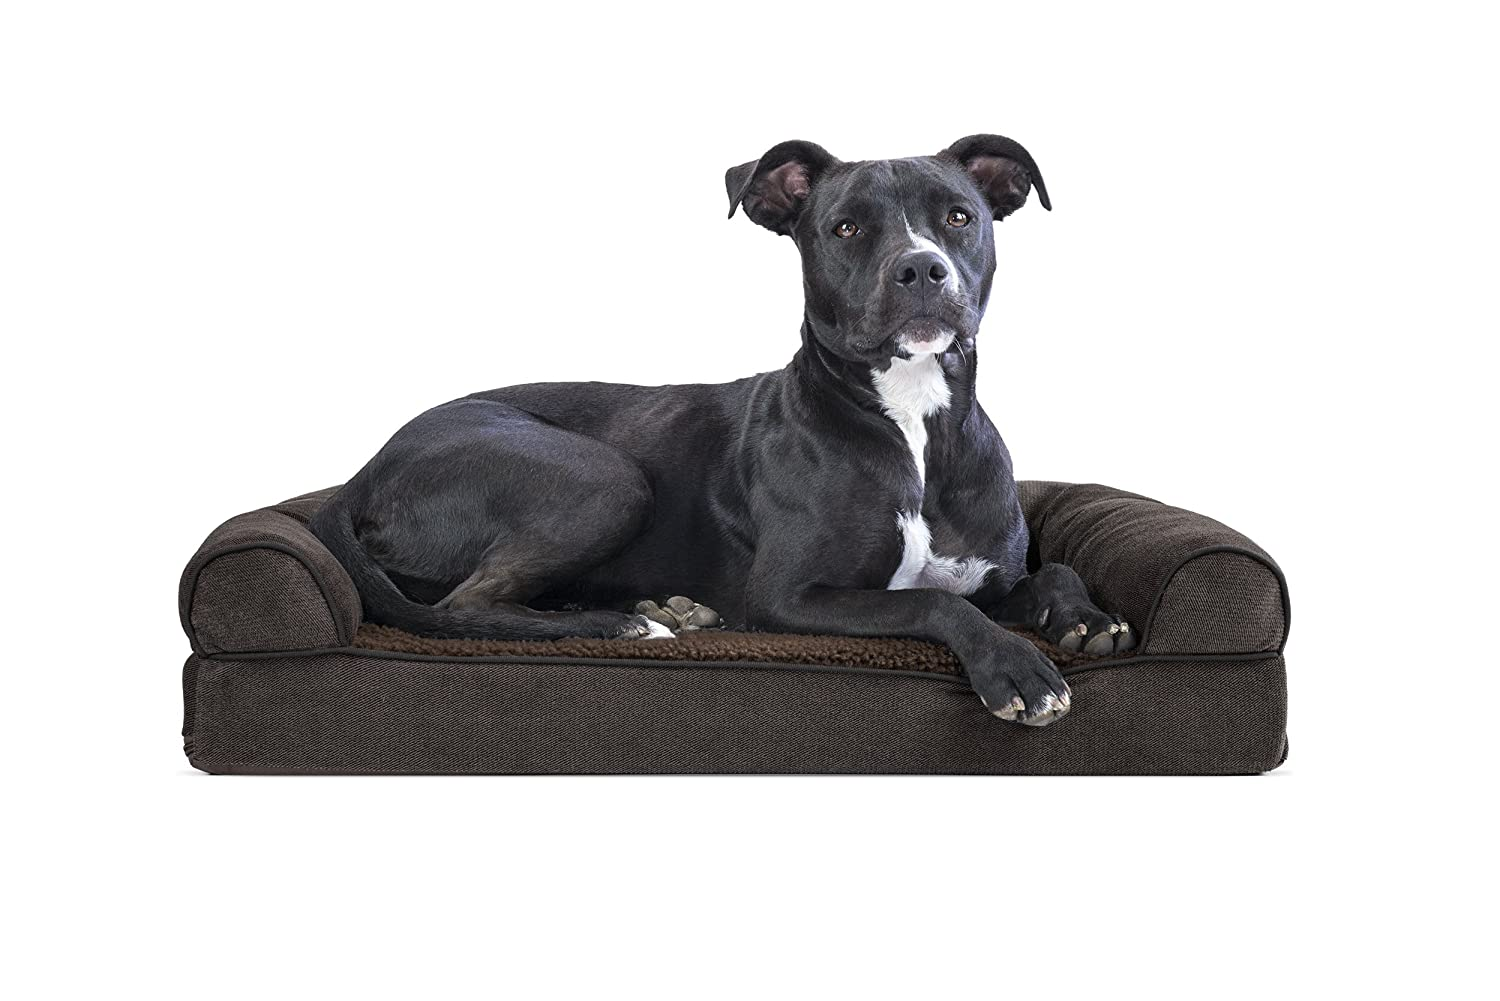 FurHaven Pet Dog Bed   Memory Foam Faux Fleece & Chenille Soft Woven Couch Sofa-Style Pet Bed for Dogs & Cats, Coffee, Medium